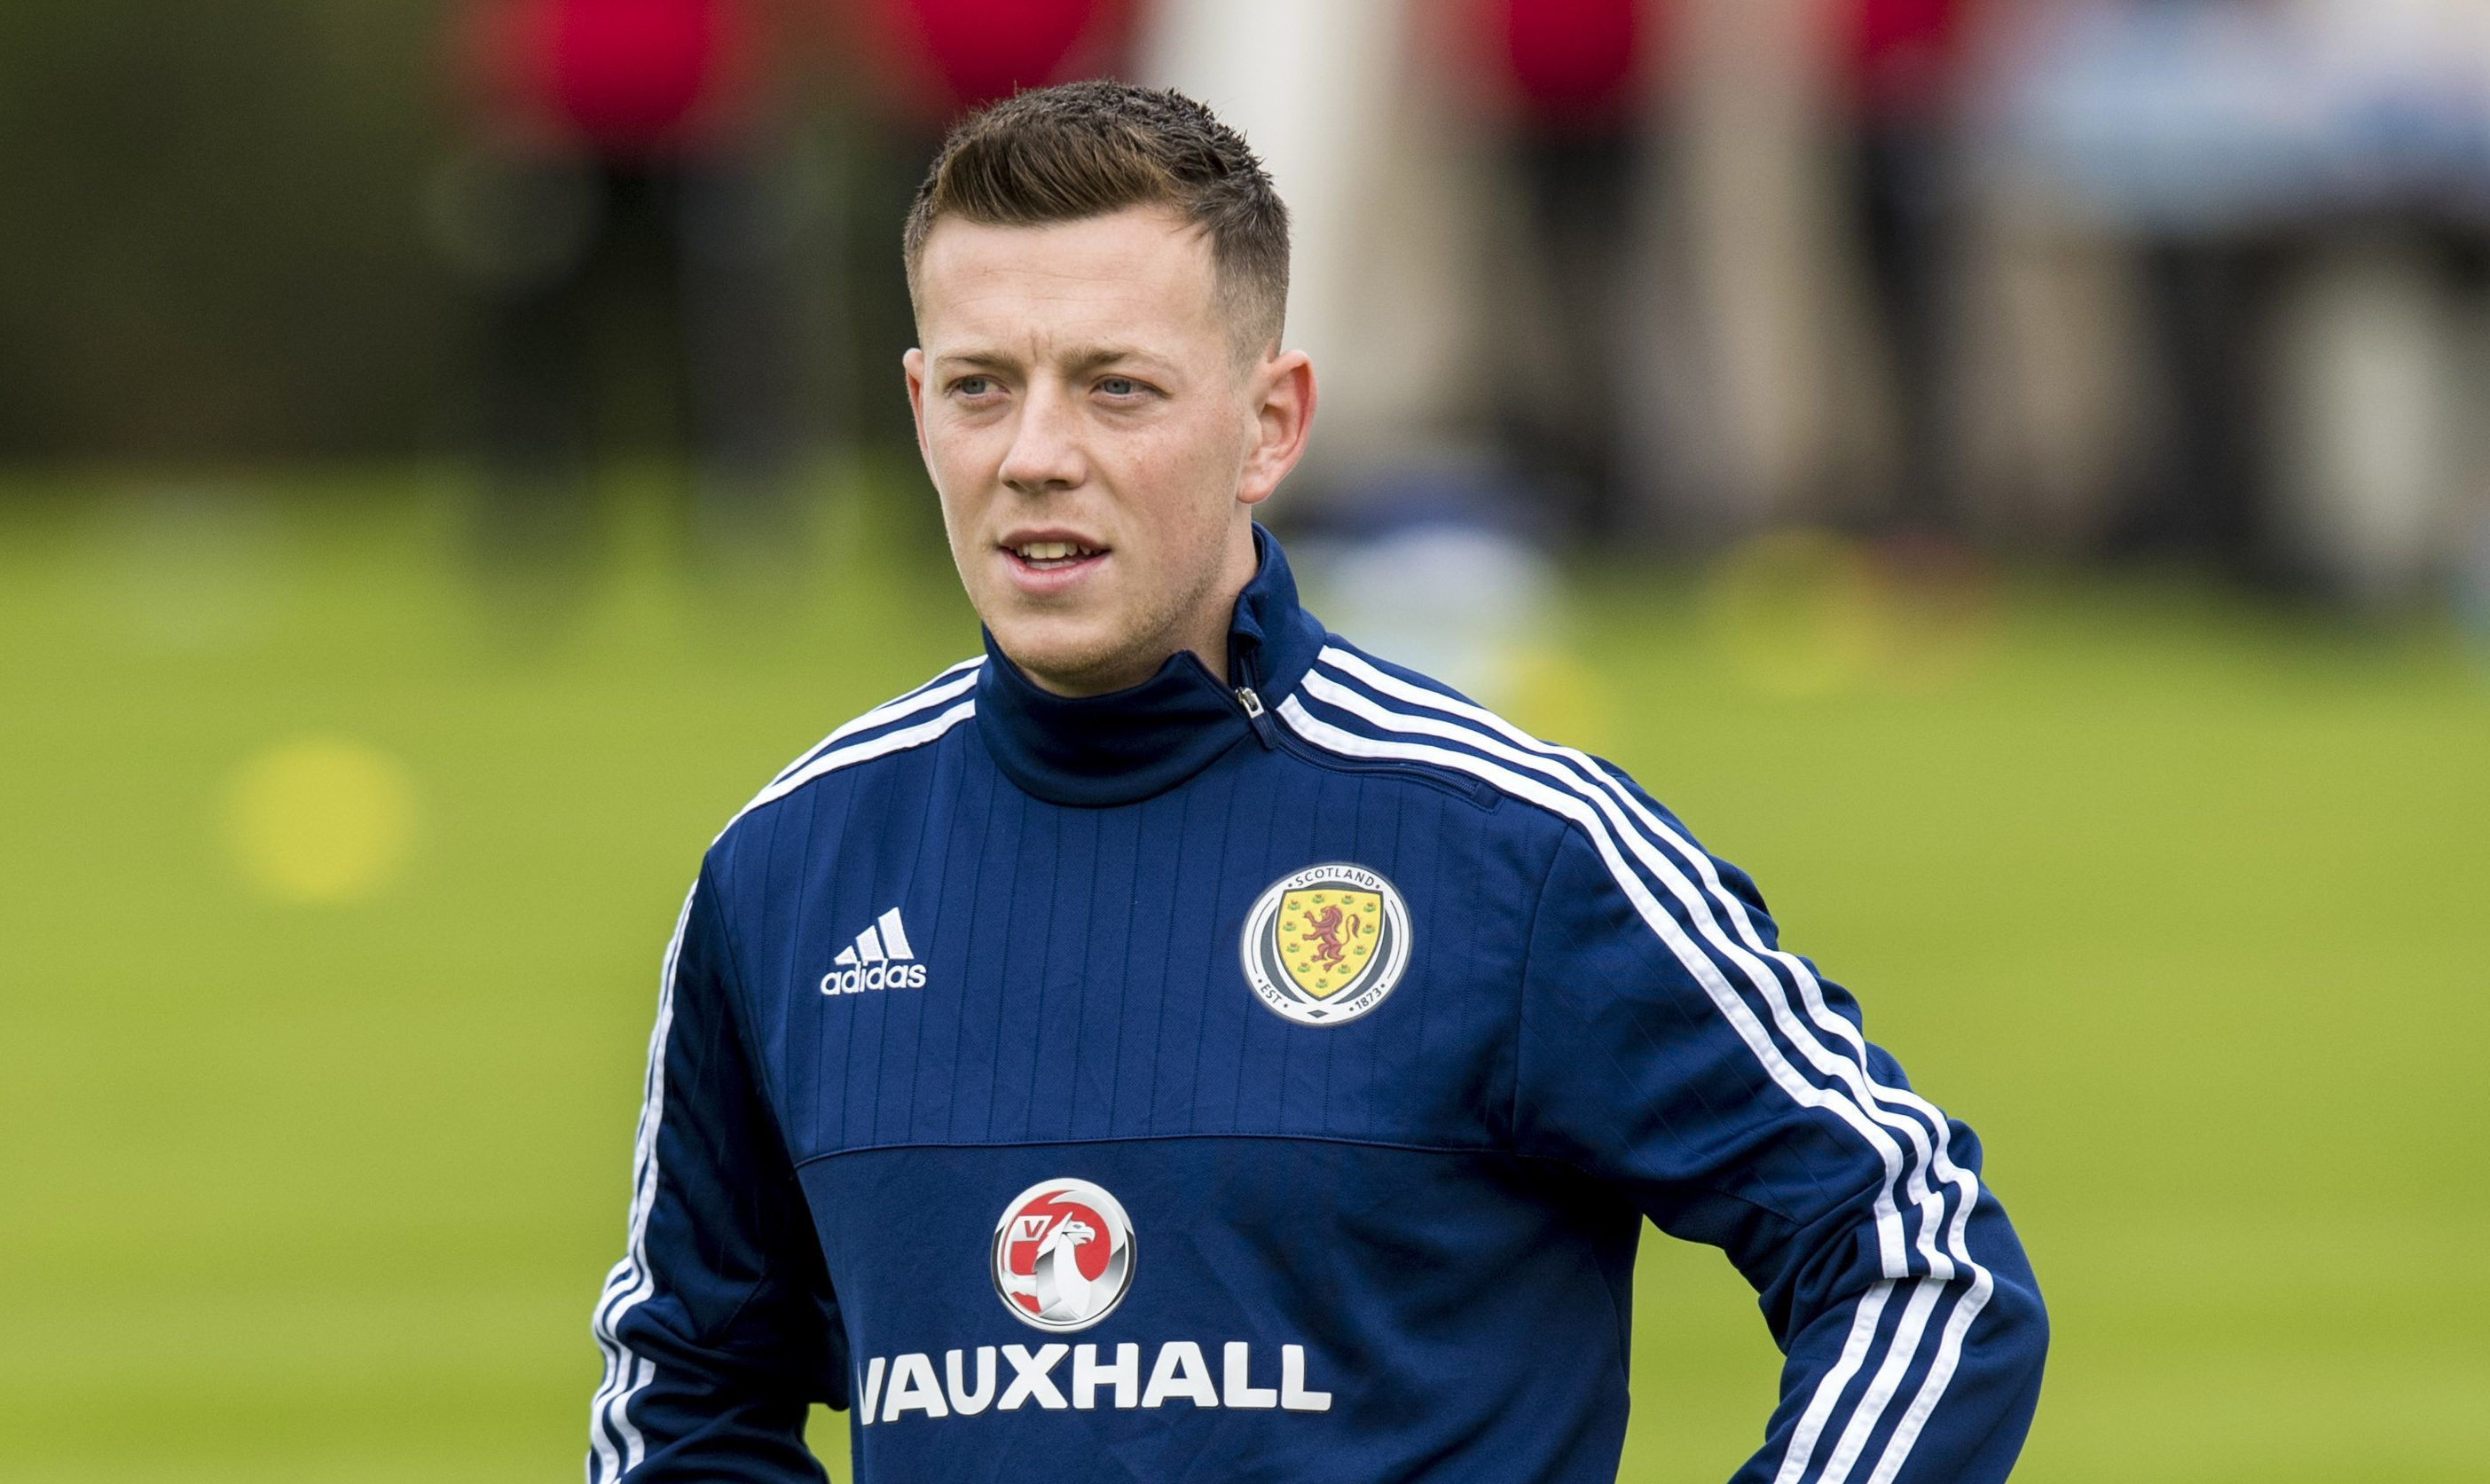 Scotland's Callum McGregor (SNS Group / Craig Williamson)